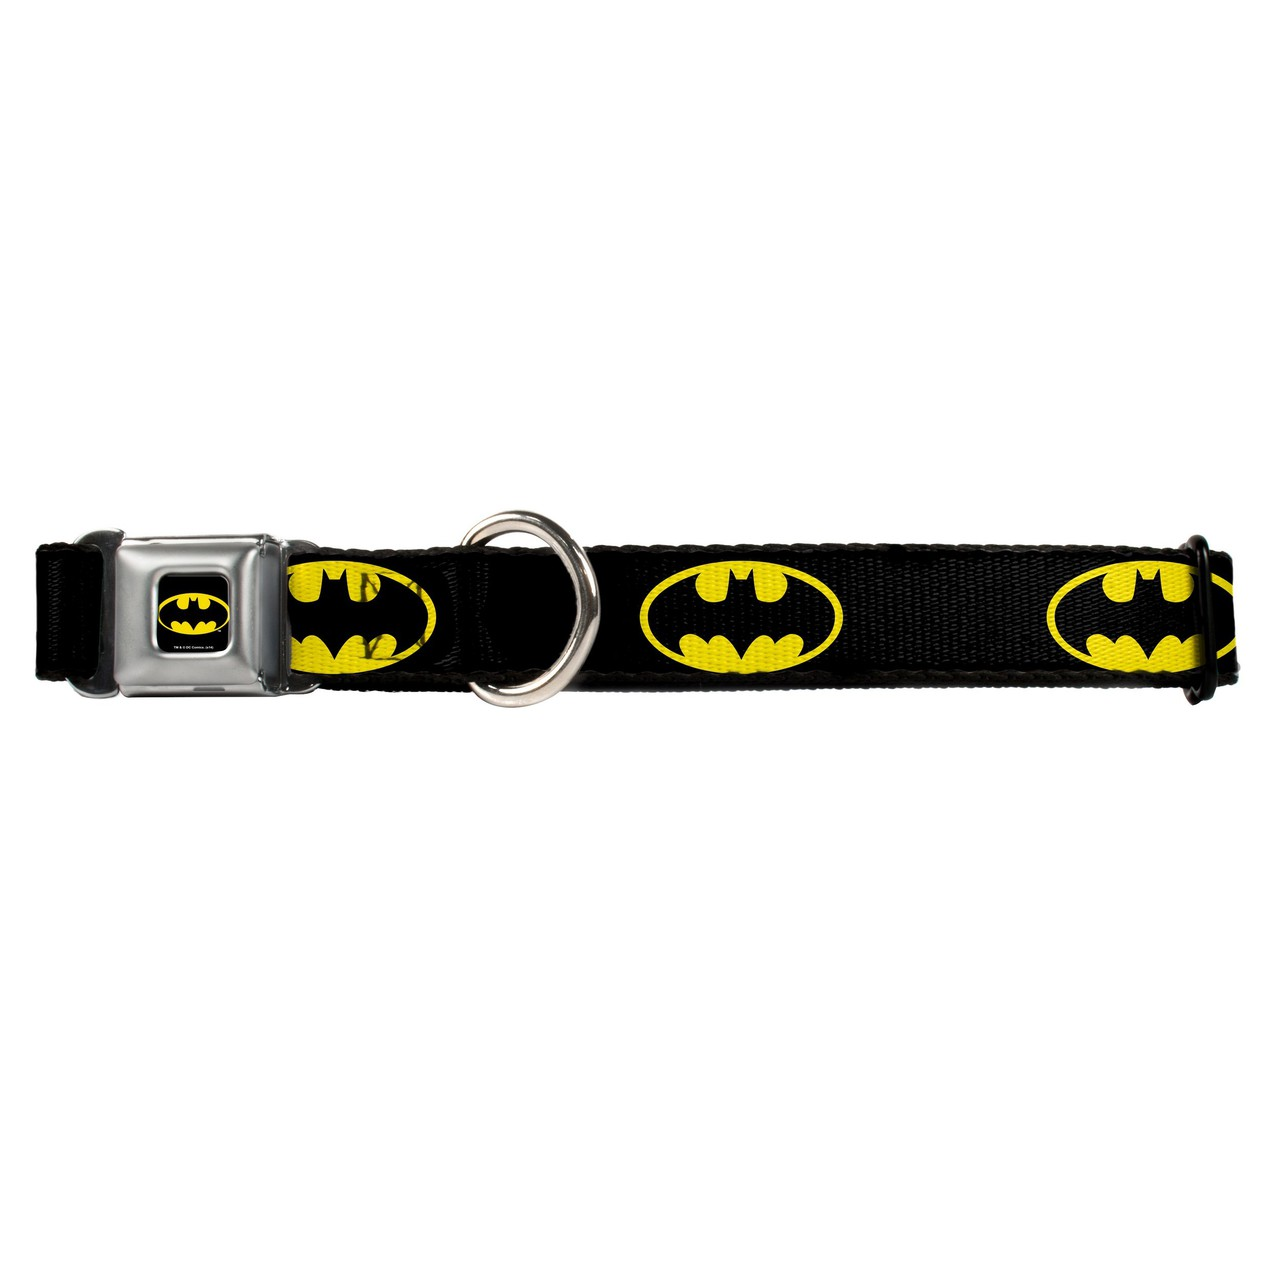 Hot Dog Batman Shield Black and Yellow Buckle-Down Seat B...